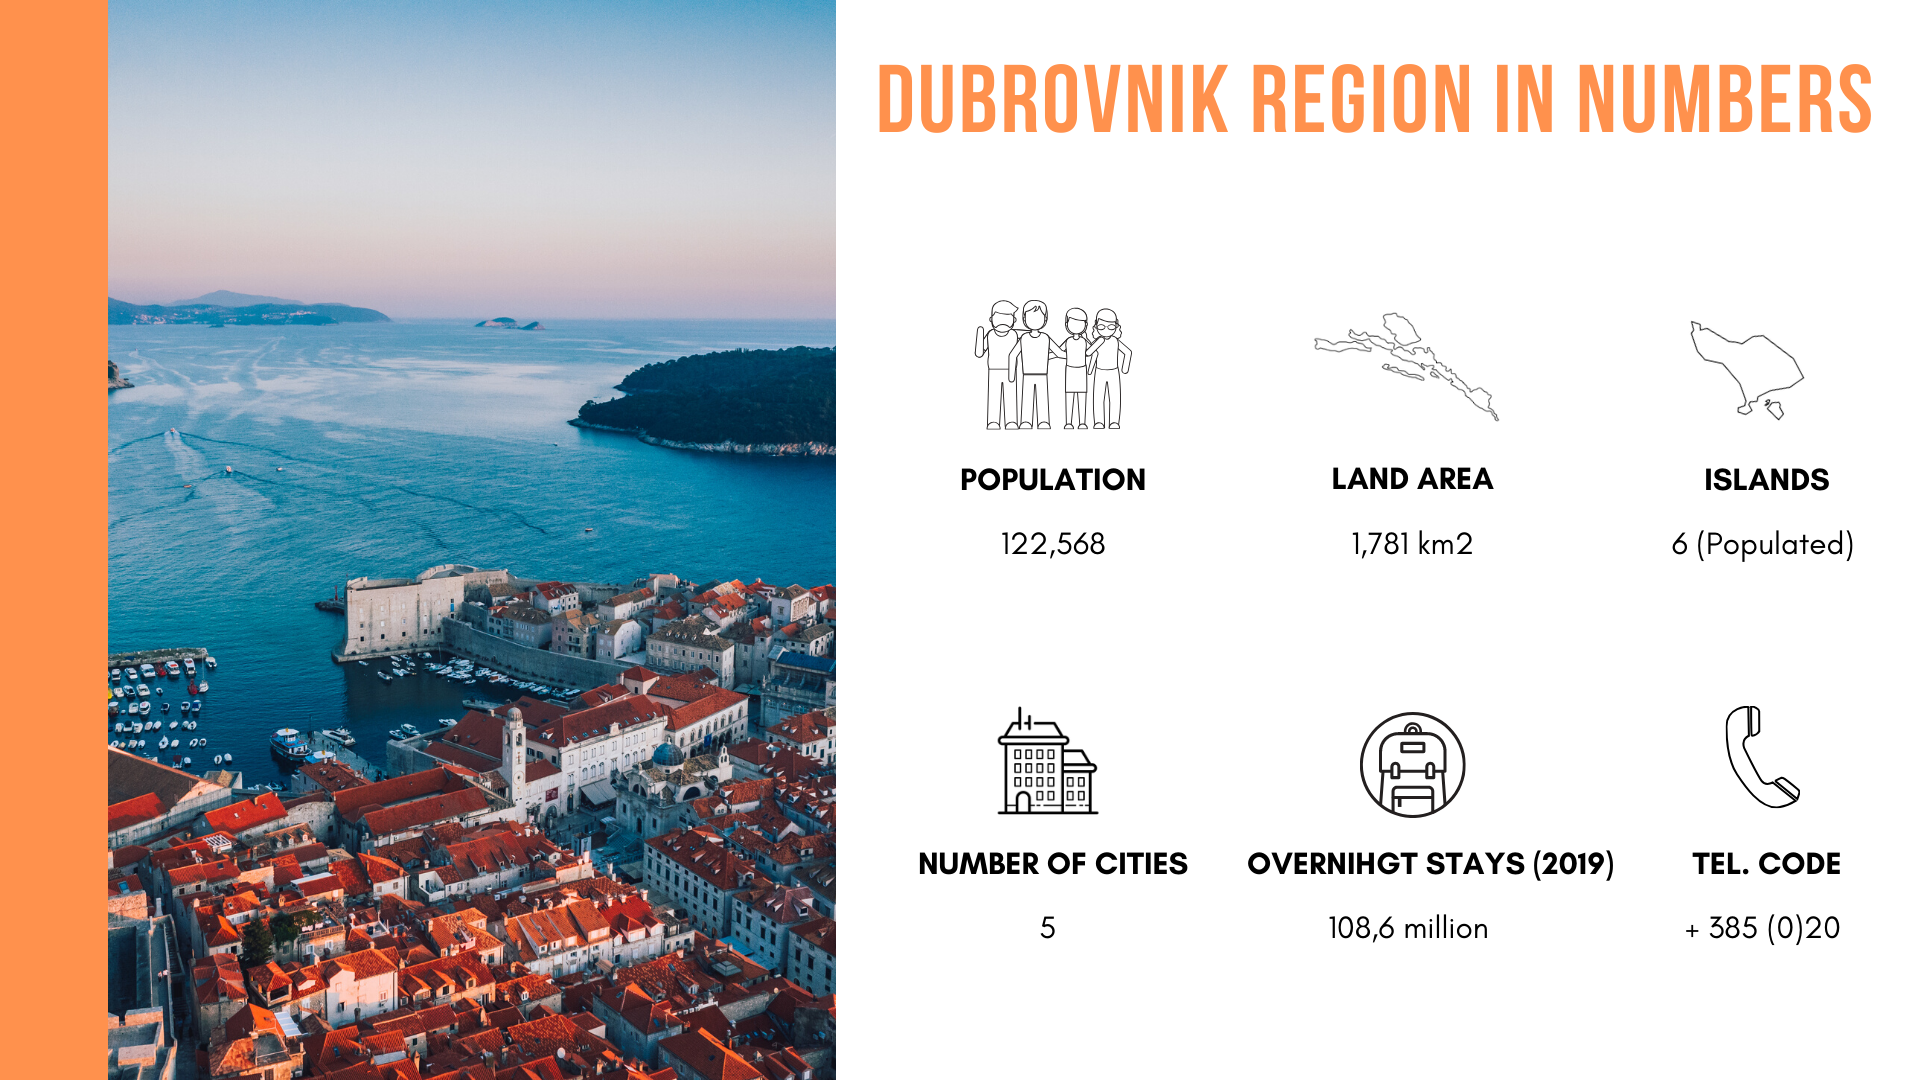 The infographic showing the general information about Dubrovnik city in numbers.